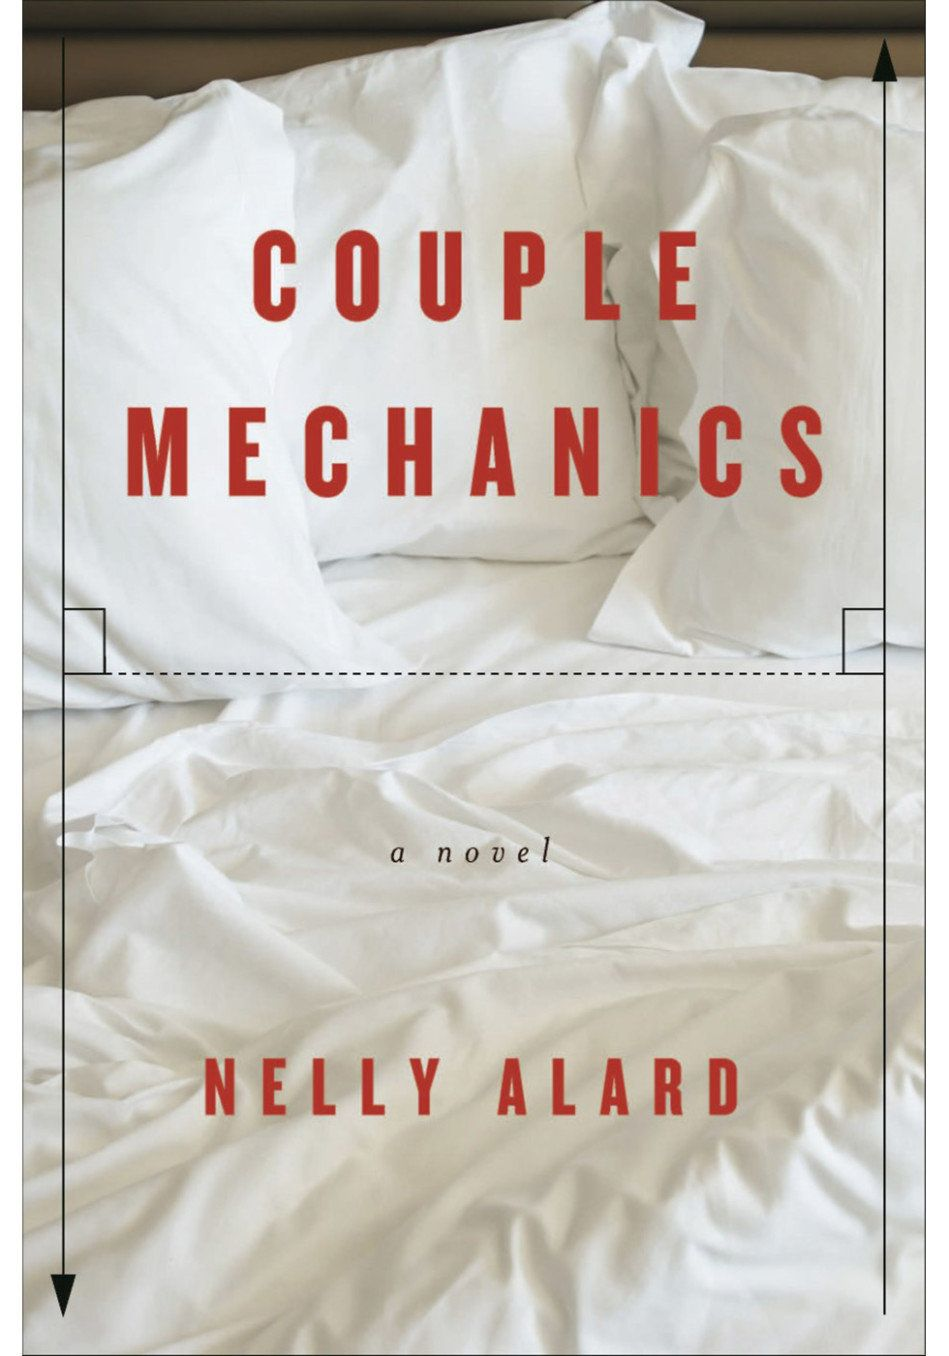 "In an insightful new novel from France, <i><a href=""http://www.amazon.com/Couple-Mechanics-Nelly-Alard-ebook/dp/B00WPQTAA8?ta"